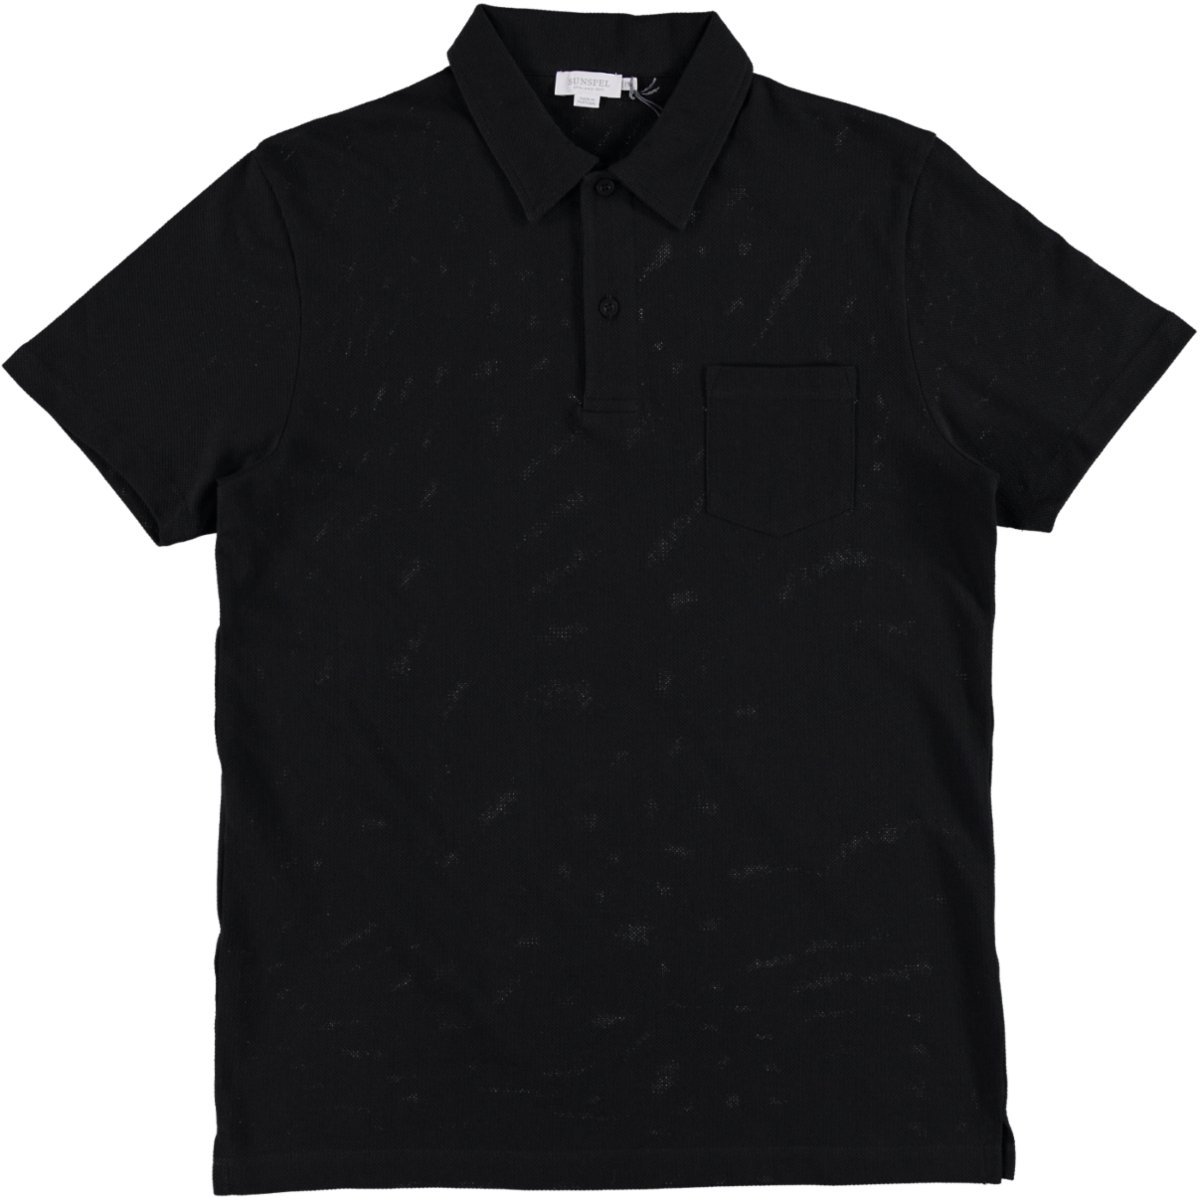 Sunspel Men's Short Sleeve Riviera Polo Shirt, Black, X-Large